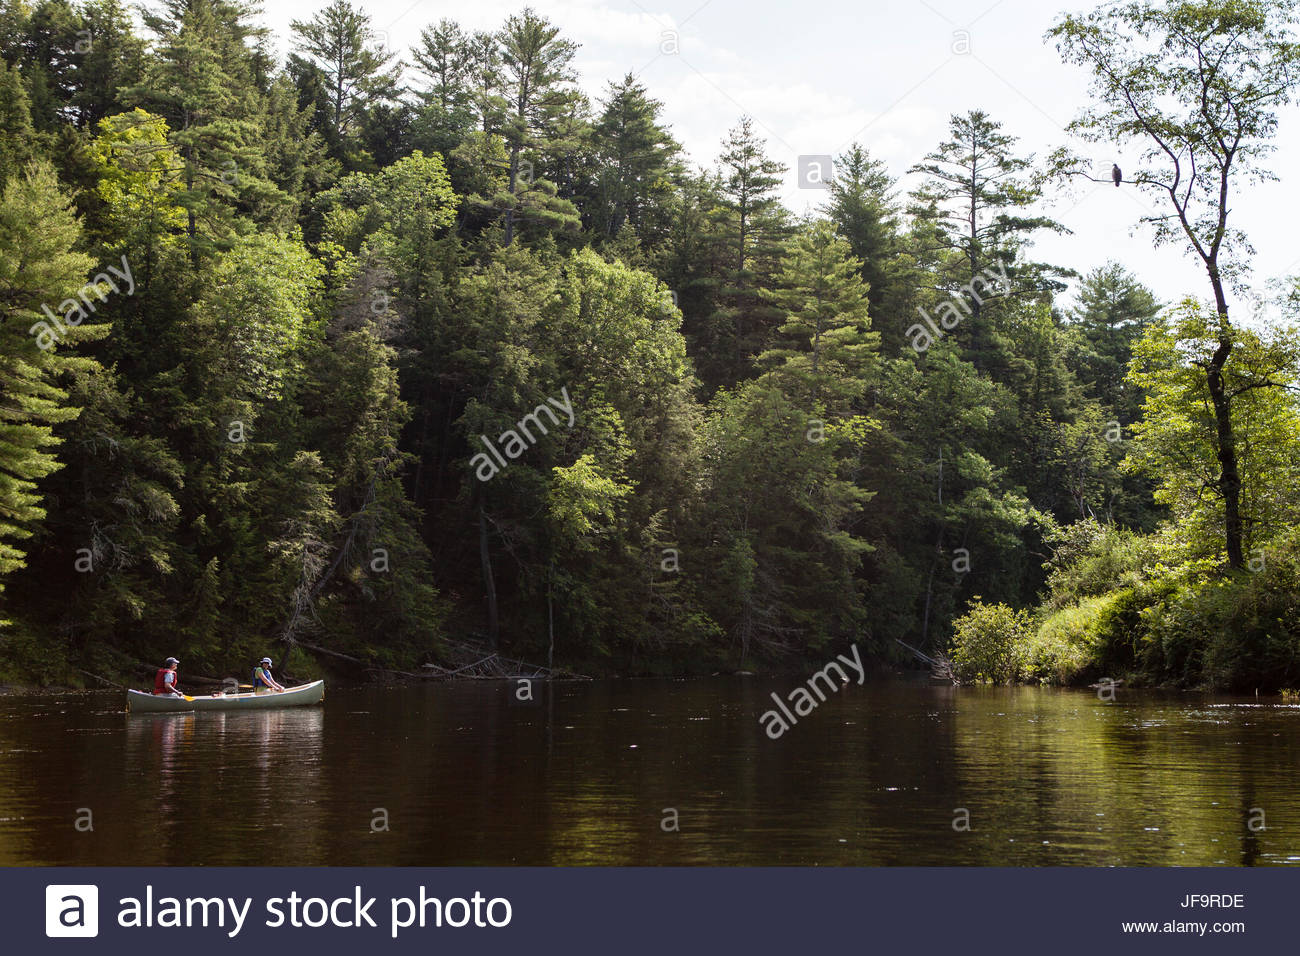 Two people canoe along the Kennebec River in Maine. - Stock Image